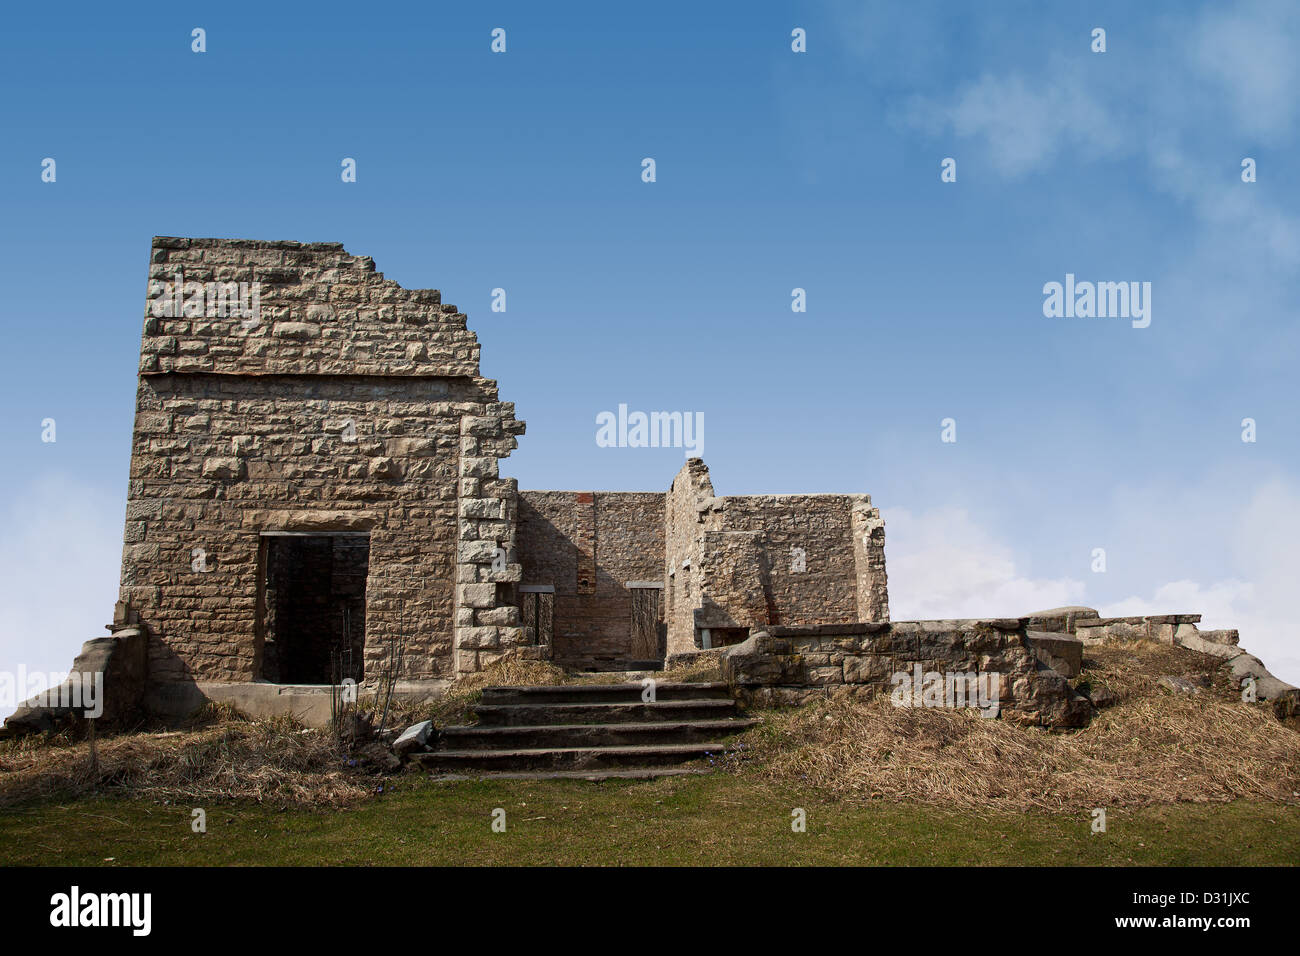 An Old Stone Mansion On A Hill Now In Ruins Shot Against Blue